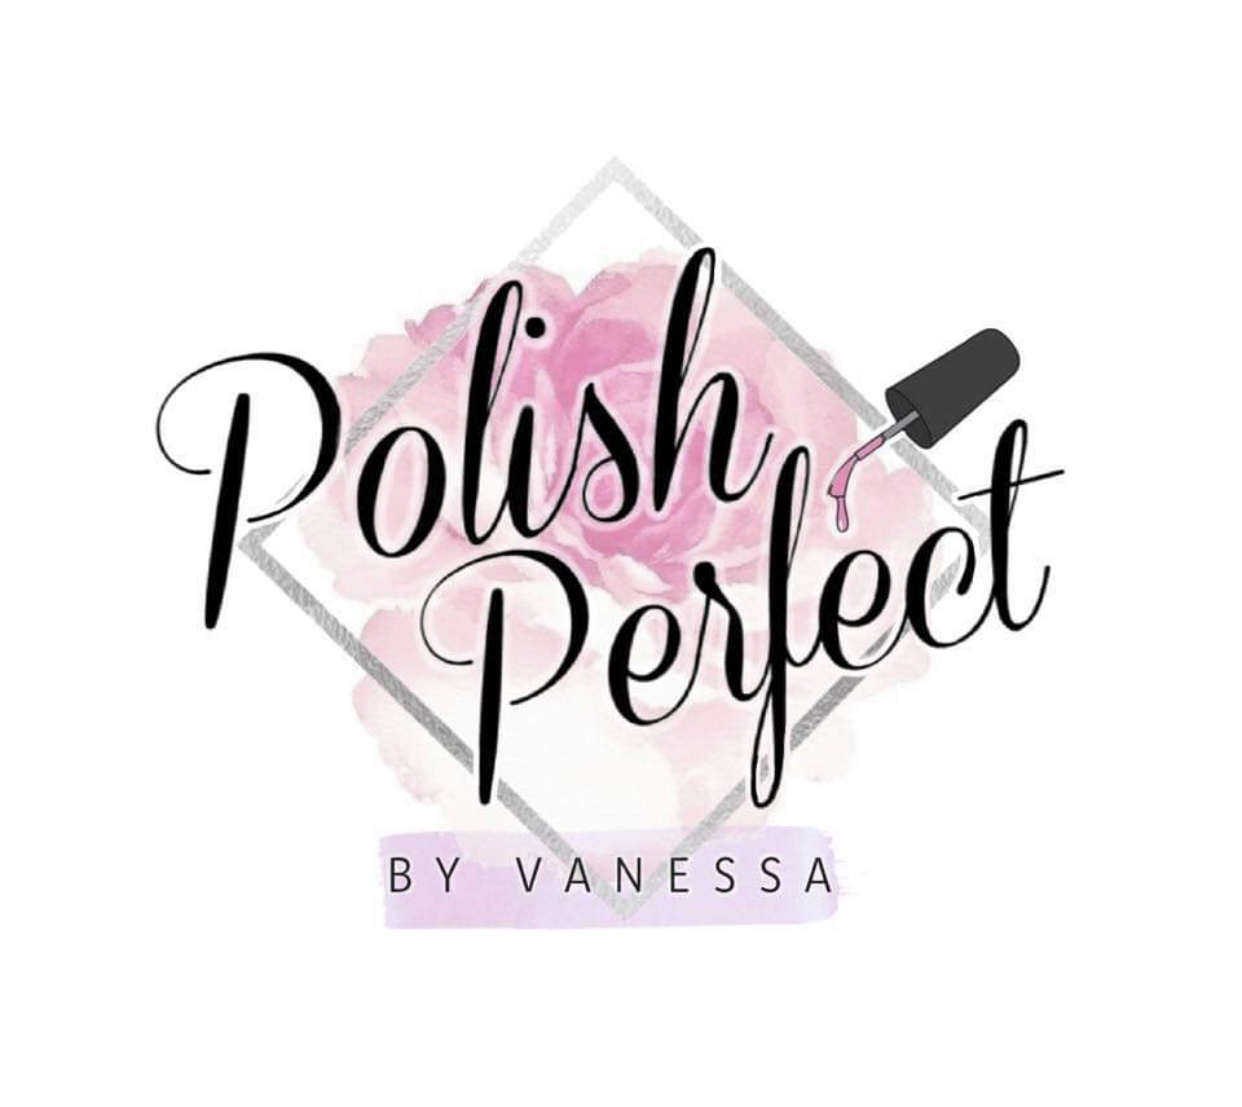 Polish Perfect by Vanessa